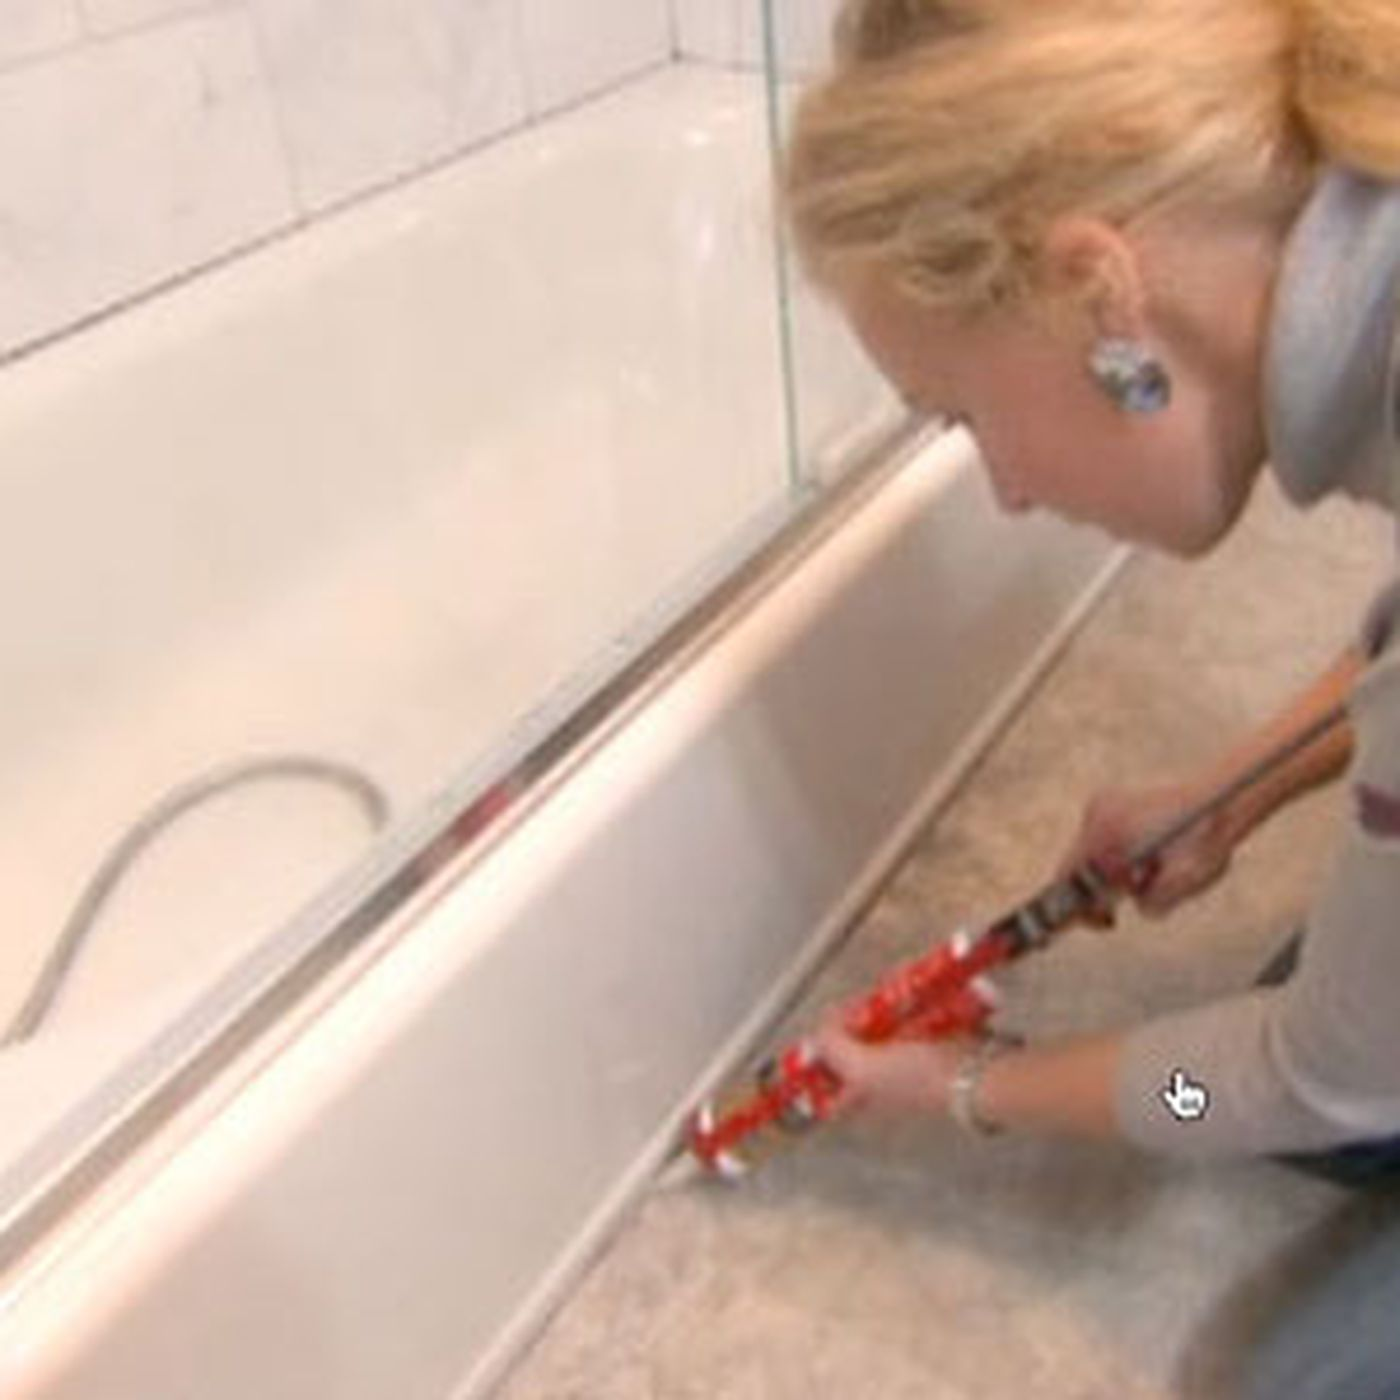 How To Detect And Fix A Bathroom Leak